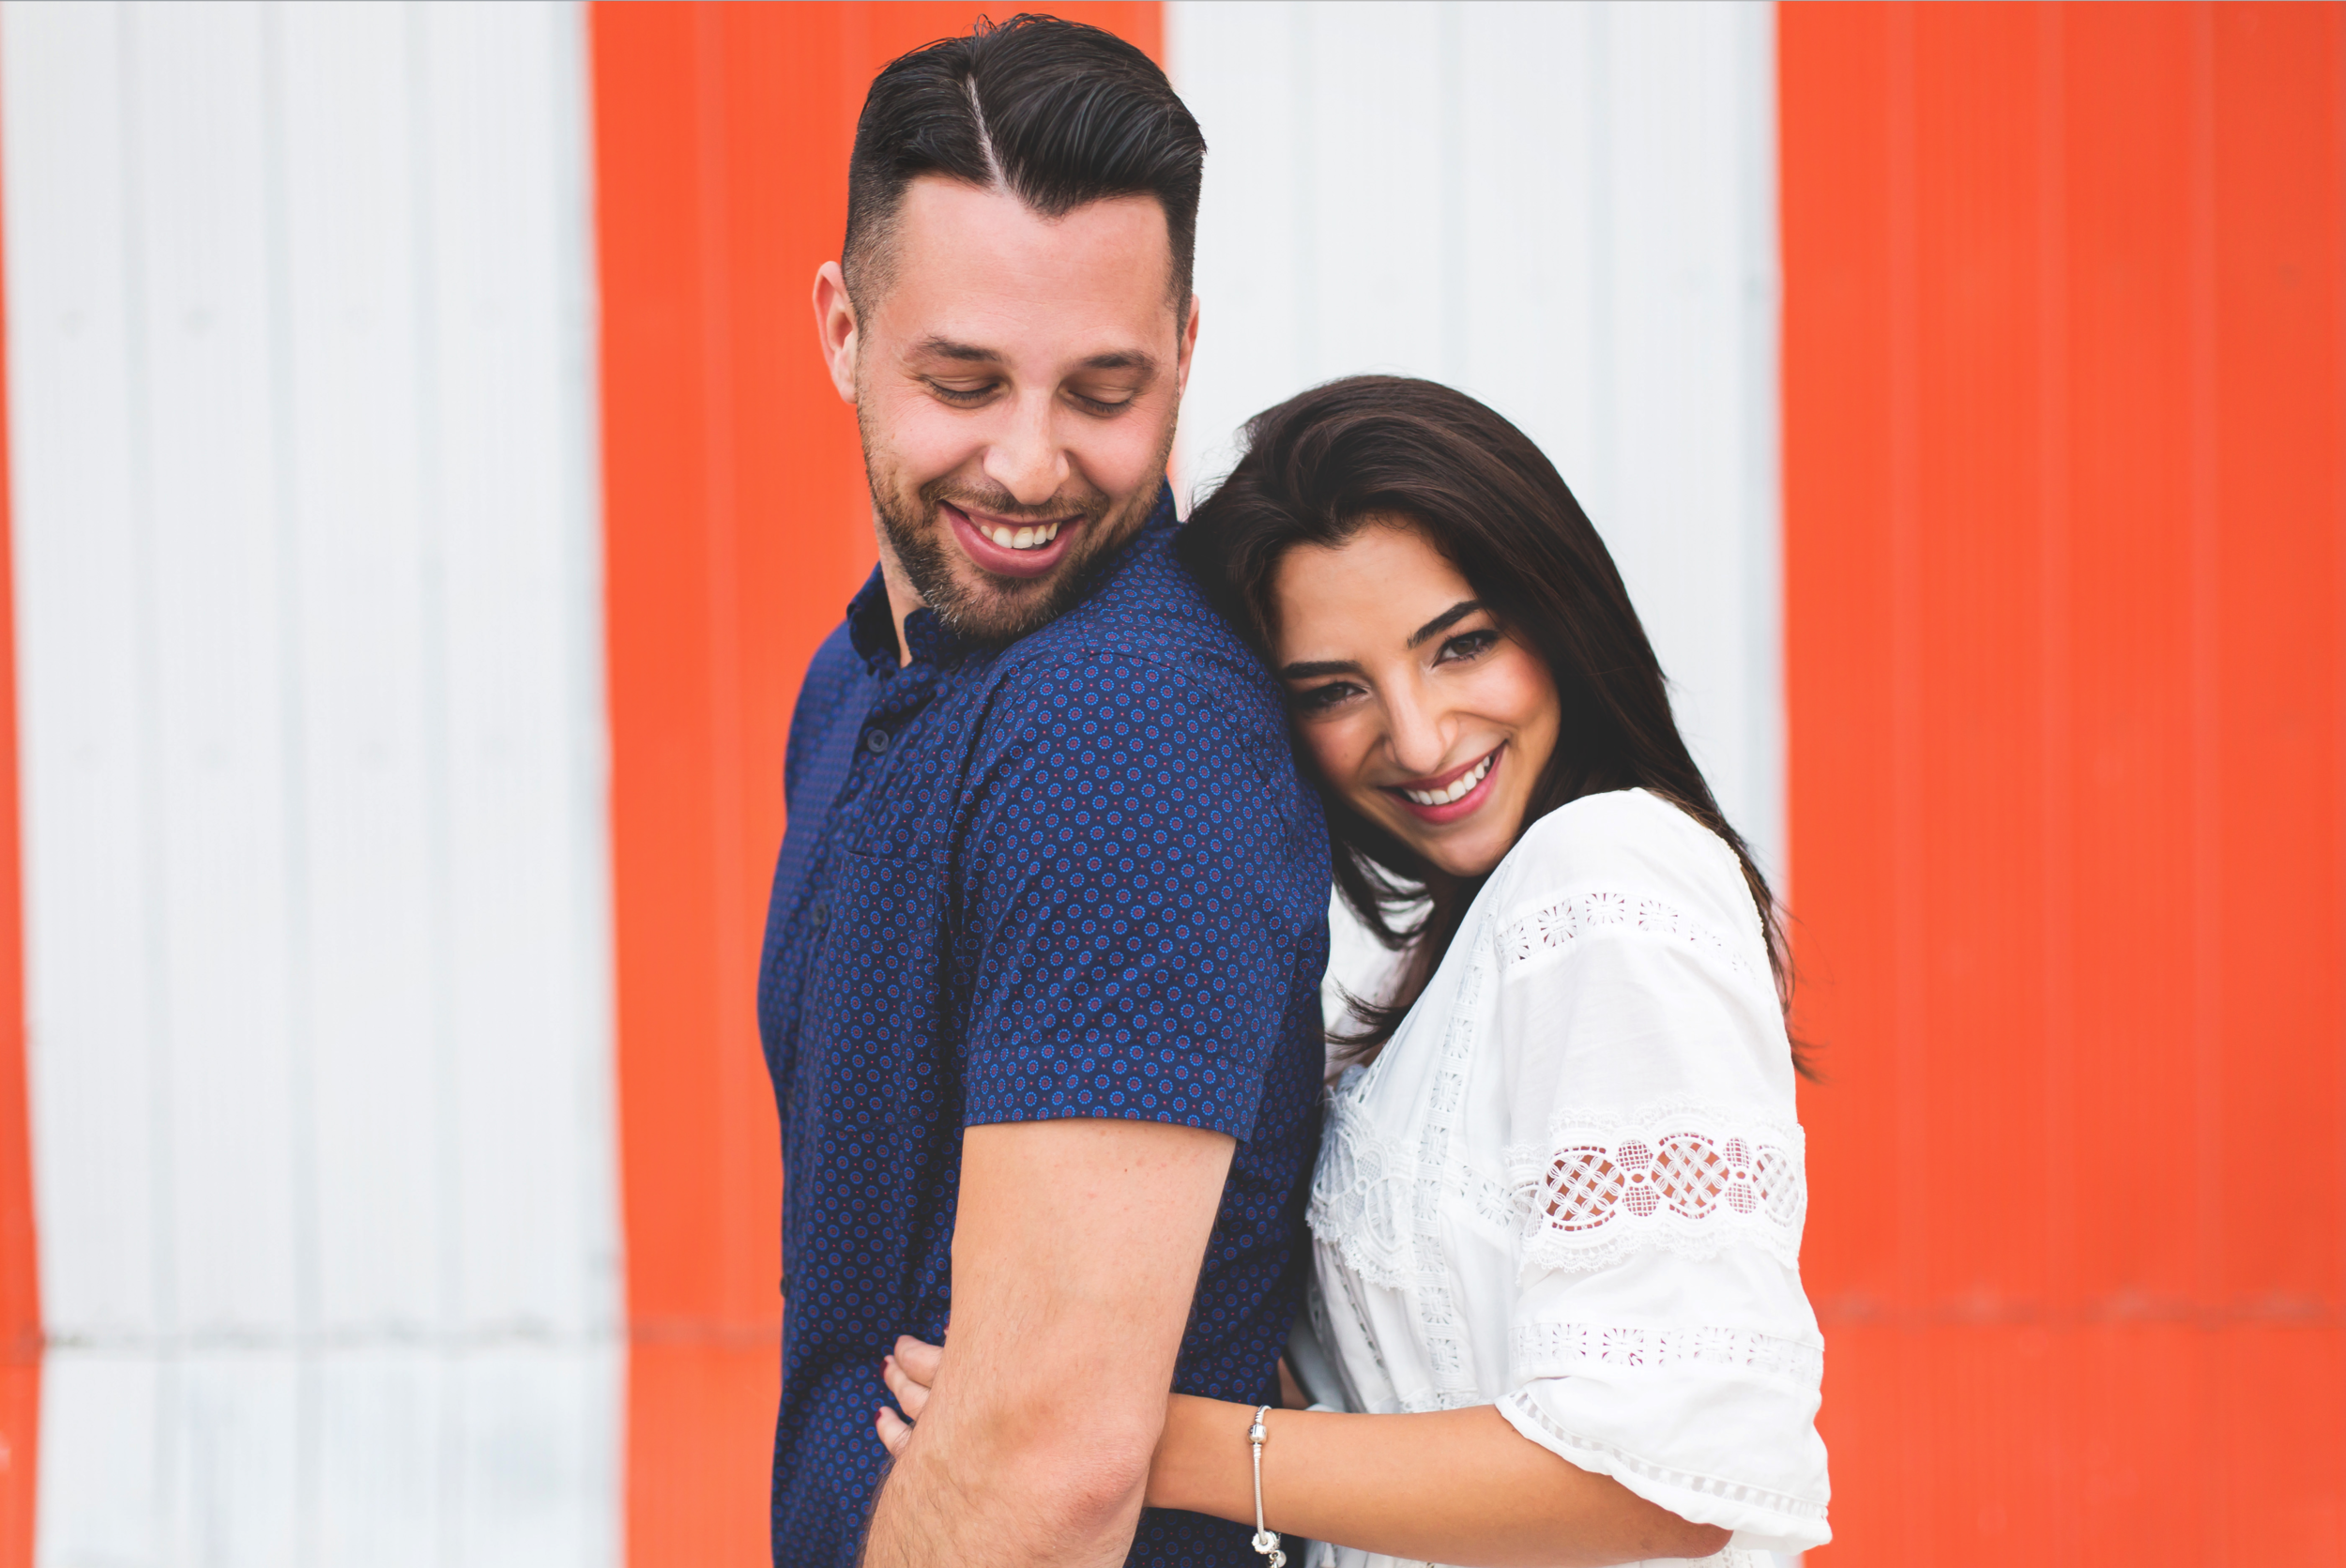 Engagement-Session-Hamilton-Burlington-Oakville-Toronto-Niagara-Wedding-Photographer-Engaged-Photography-Brantford-Airport-HamOnt-Engaged-Moments-by-Lauren-Photo-Image-21.png